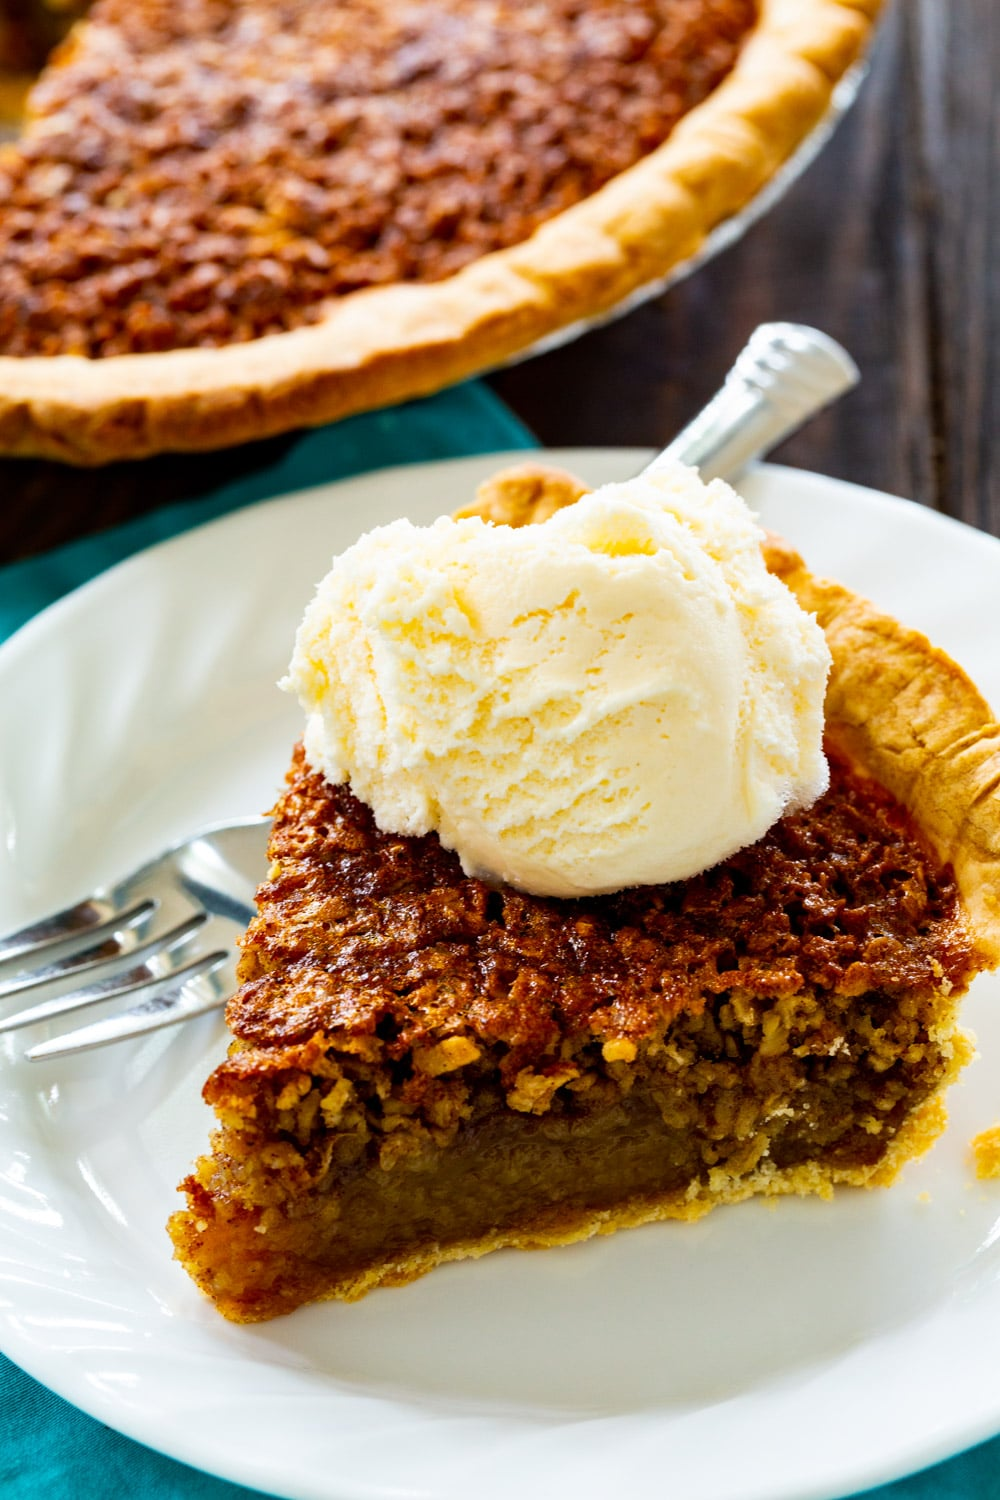 Slice of pie on a plate.